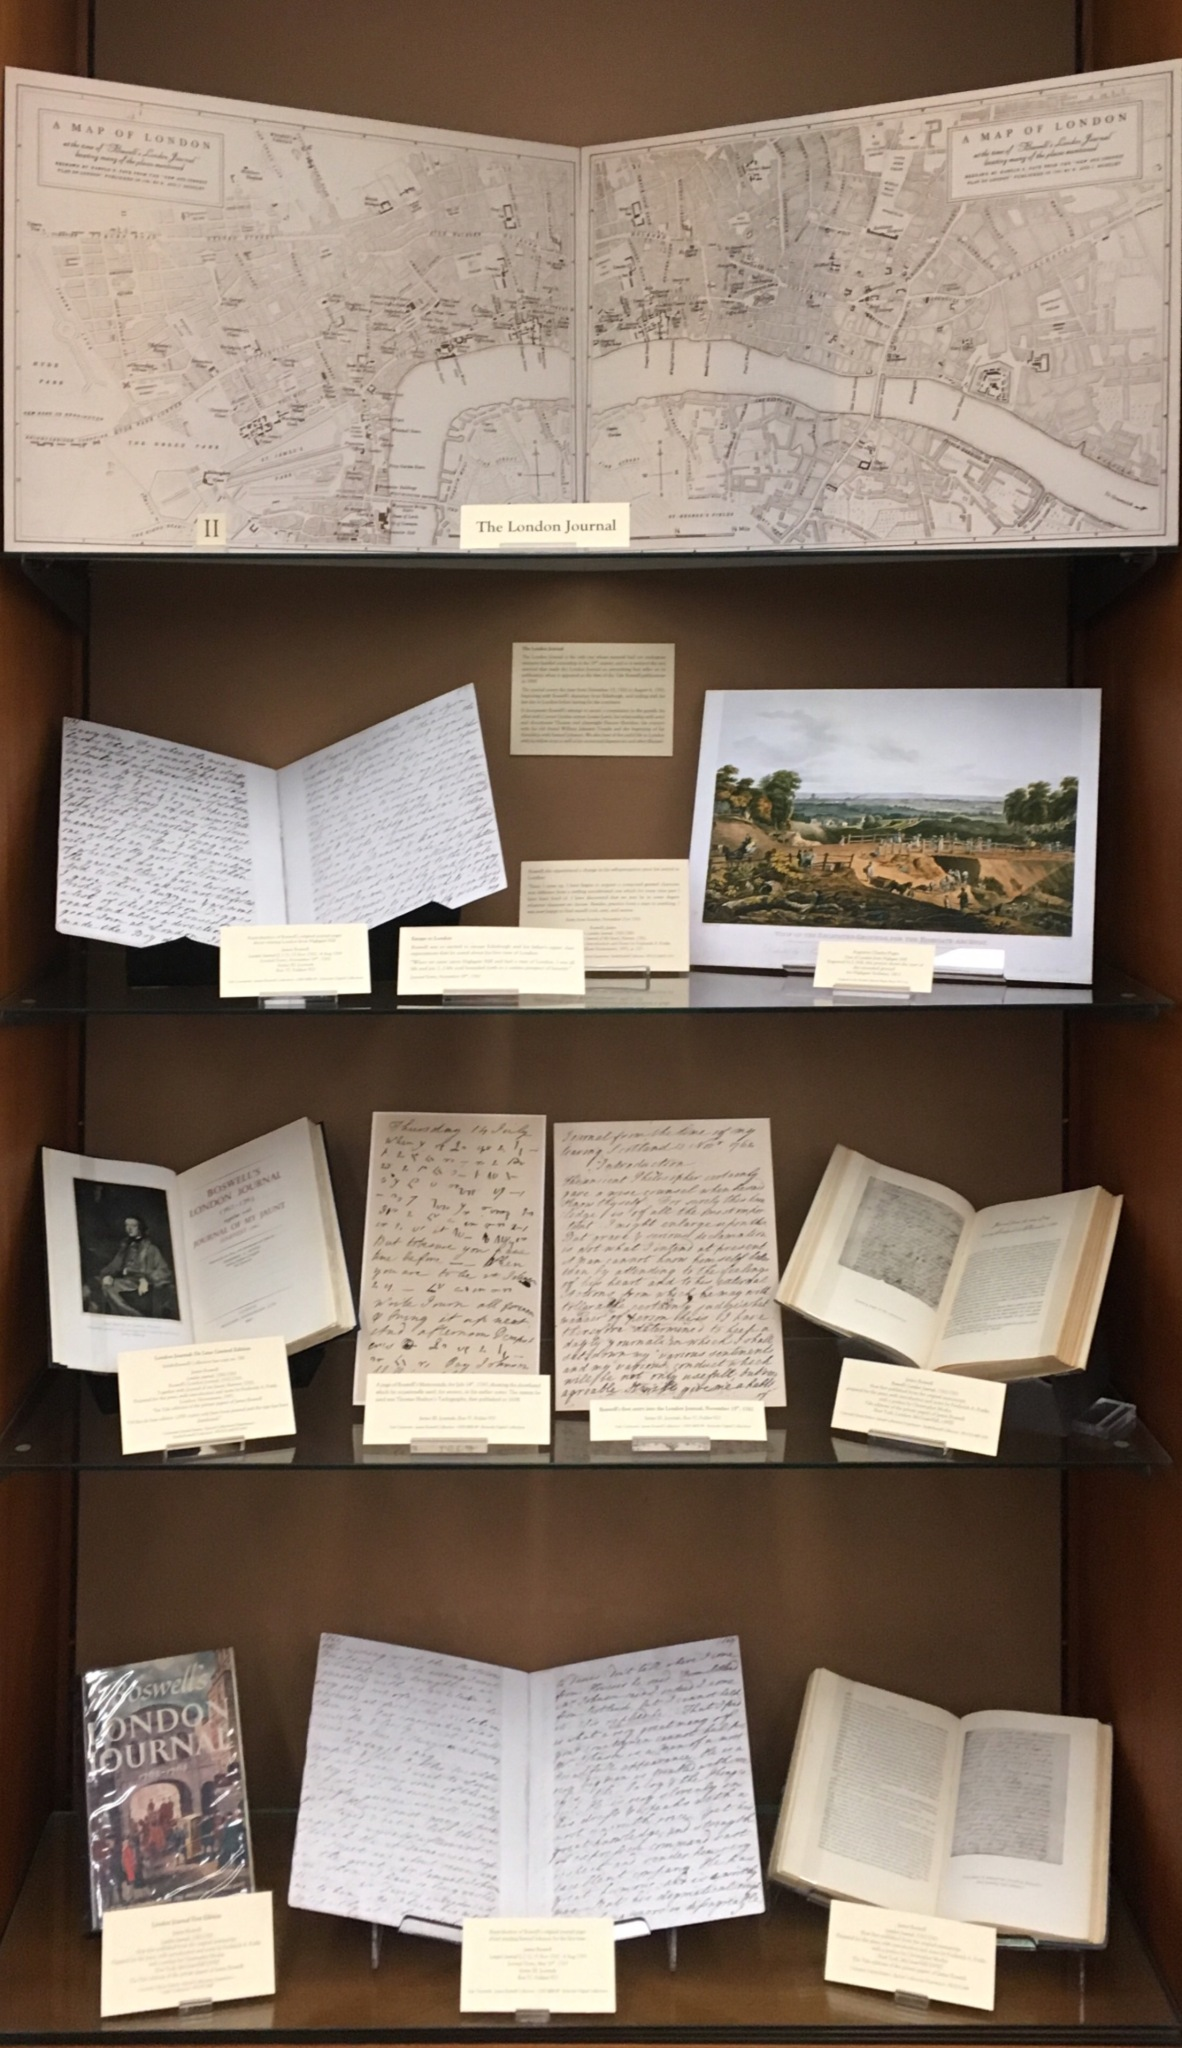 A display case featuring a large, two-paneled map of London and the books, supplementary texts, and images featured on this page.